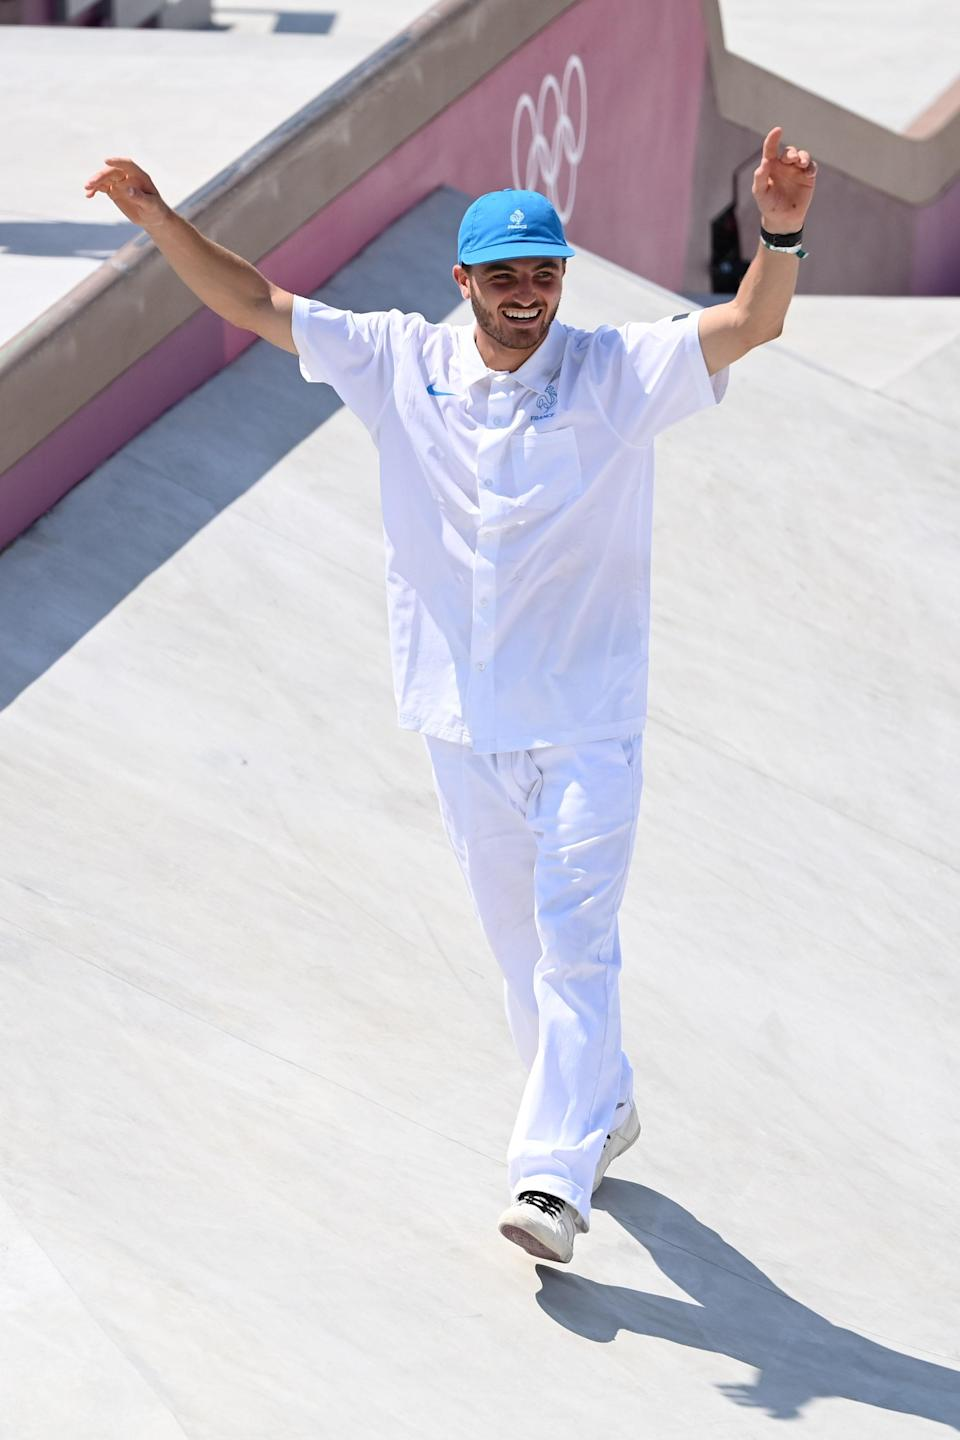 Vincent Milou, who ranked fourth in the men's street finals, wearing a crisp, all-white version of the French uniform.